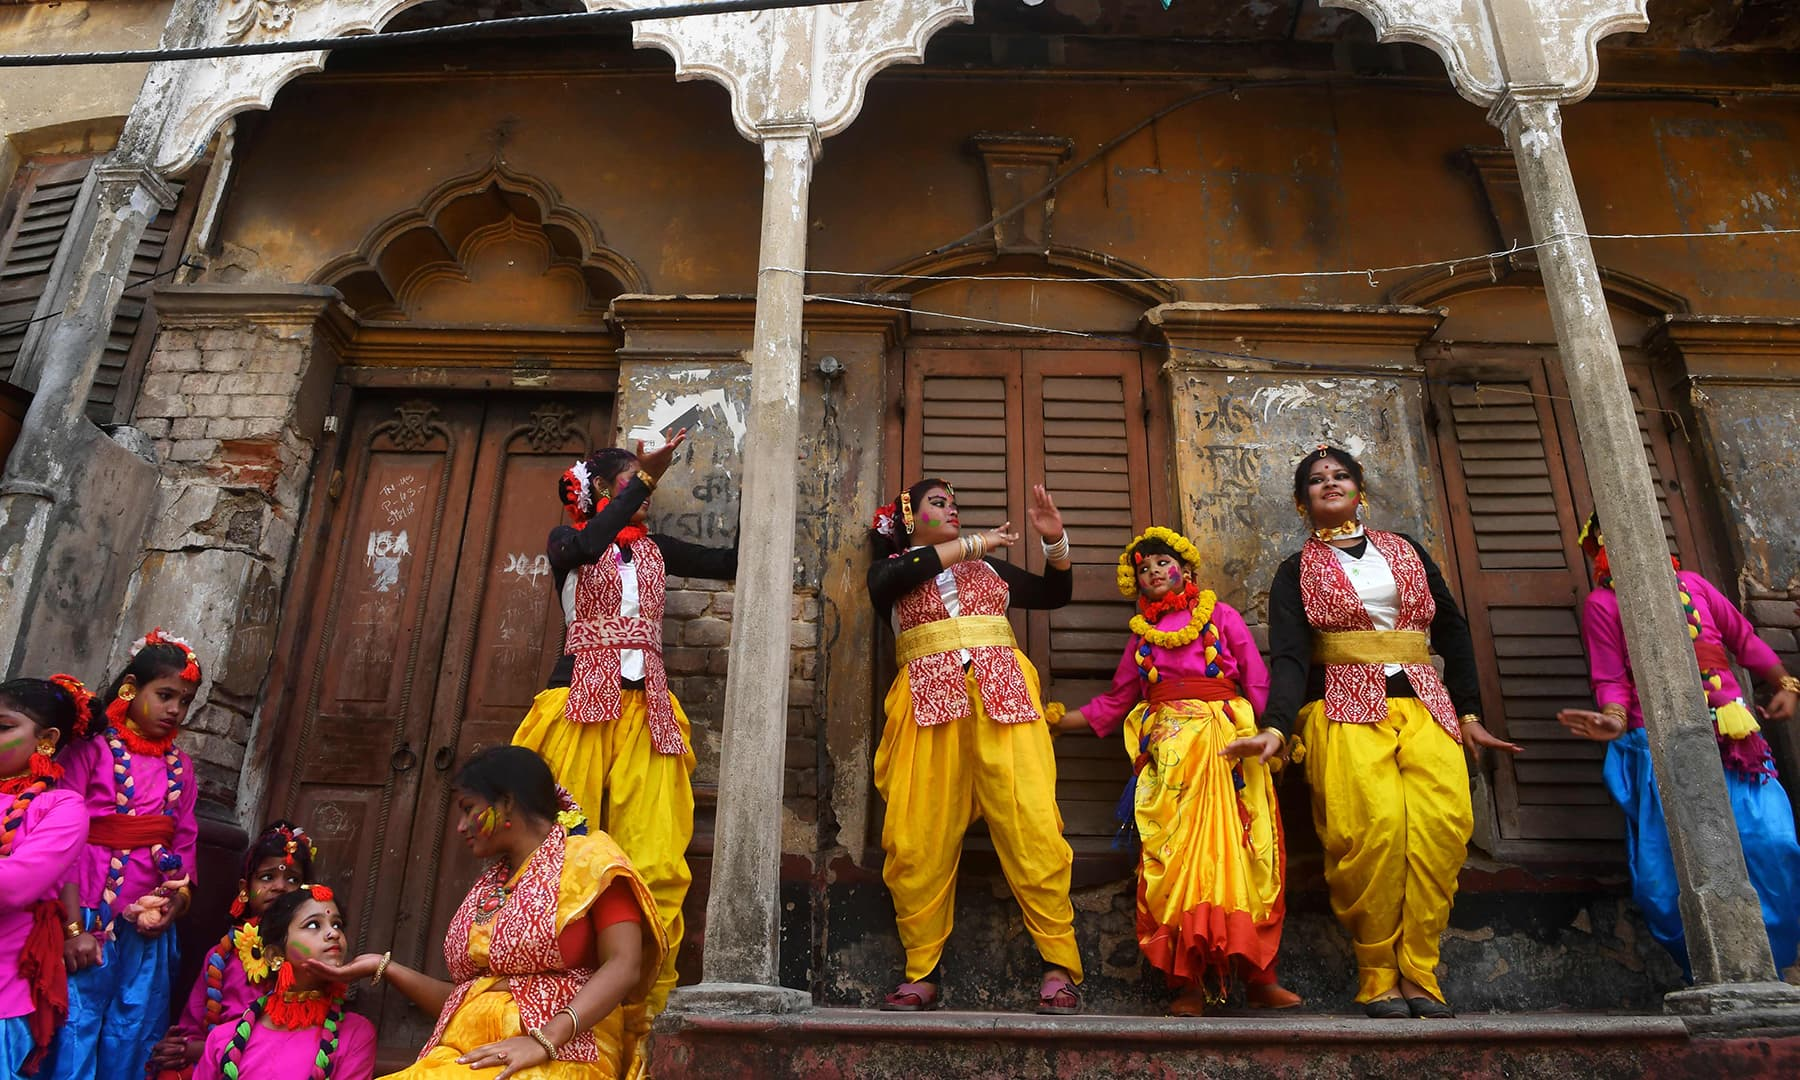 Students and others take a break during a cultural procession to celebrate Holi in Kolkata. — AFP